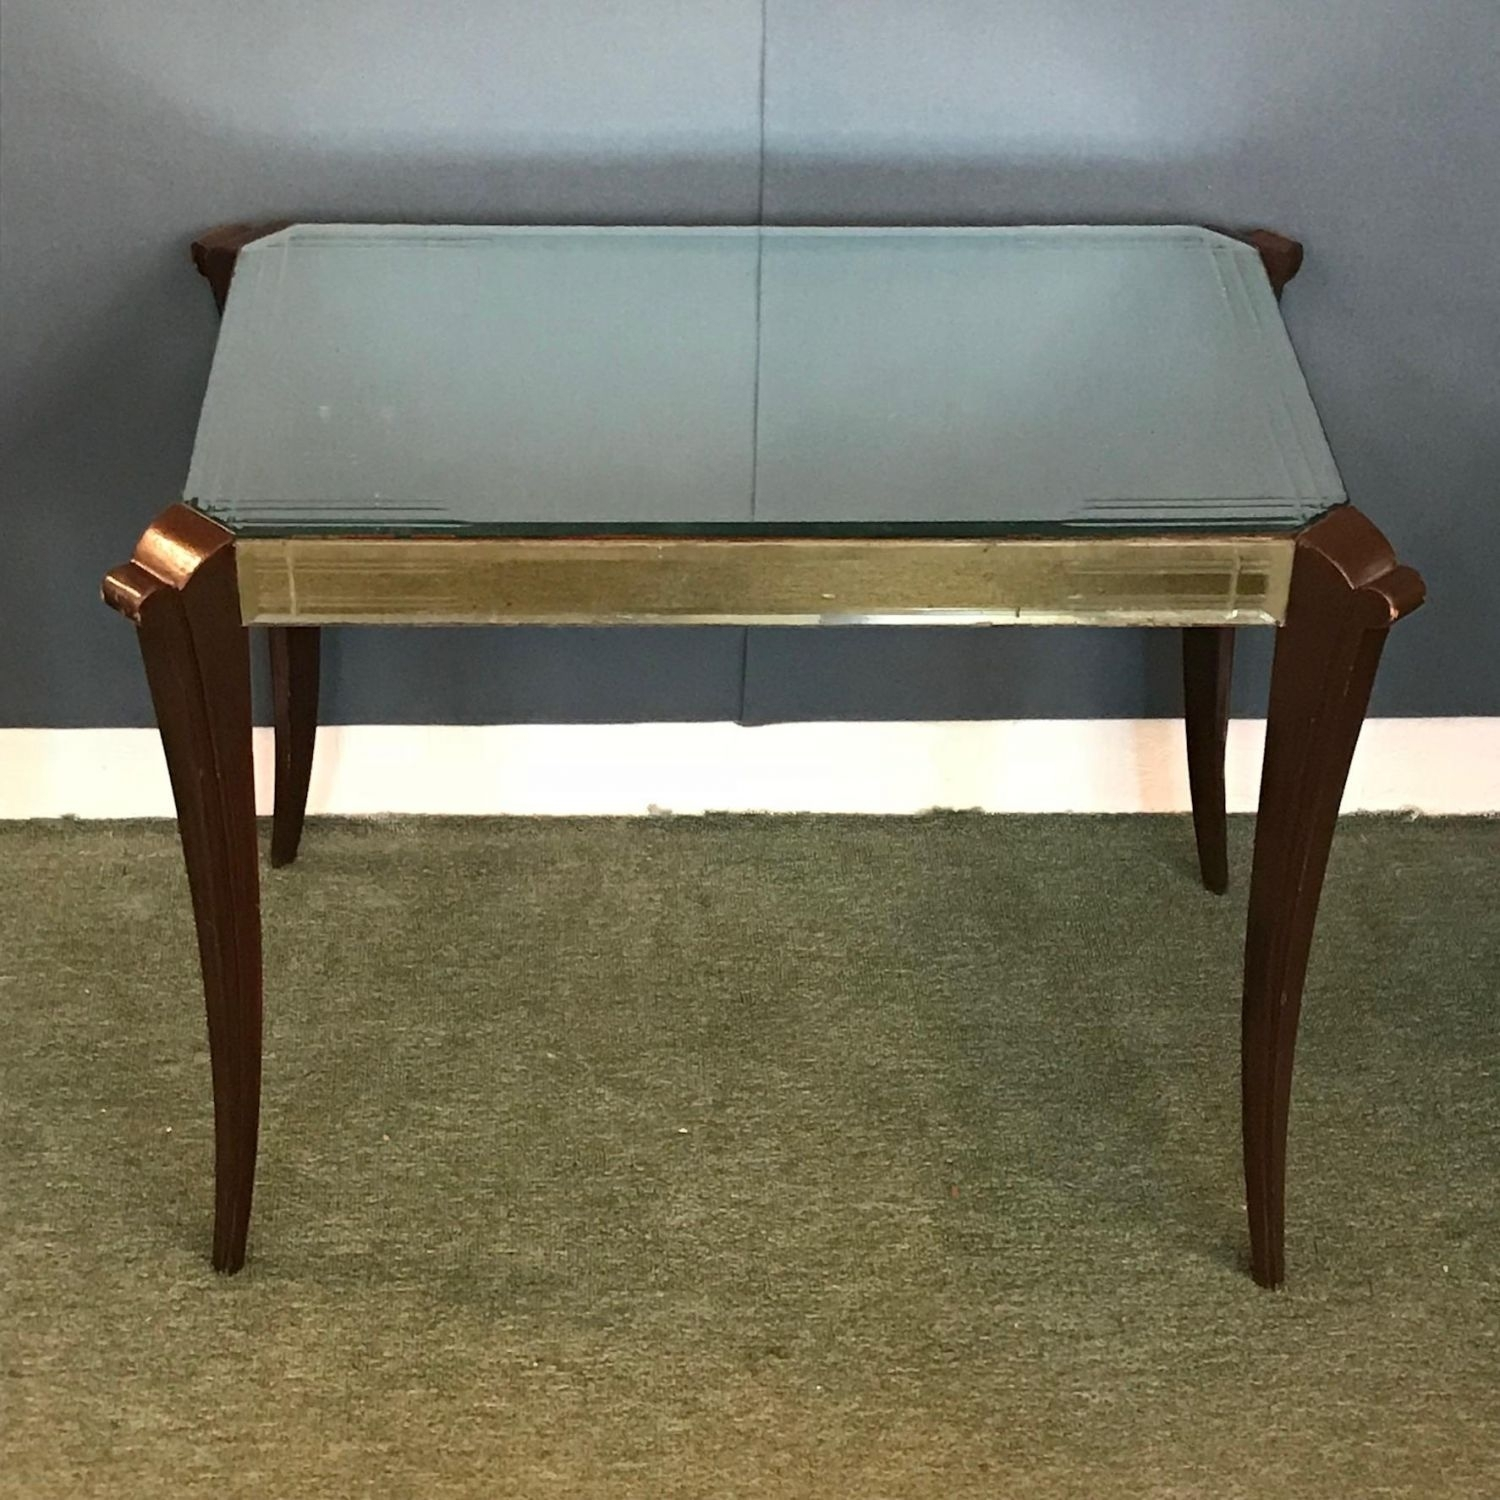 Art Deco 1930S Mirrored Coffee Table - Furniture Etc - Hemswell with regard to Antiqued Art Deco Coffee Tables (Image 10 of 30)